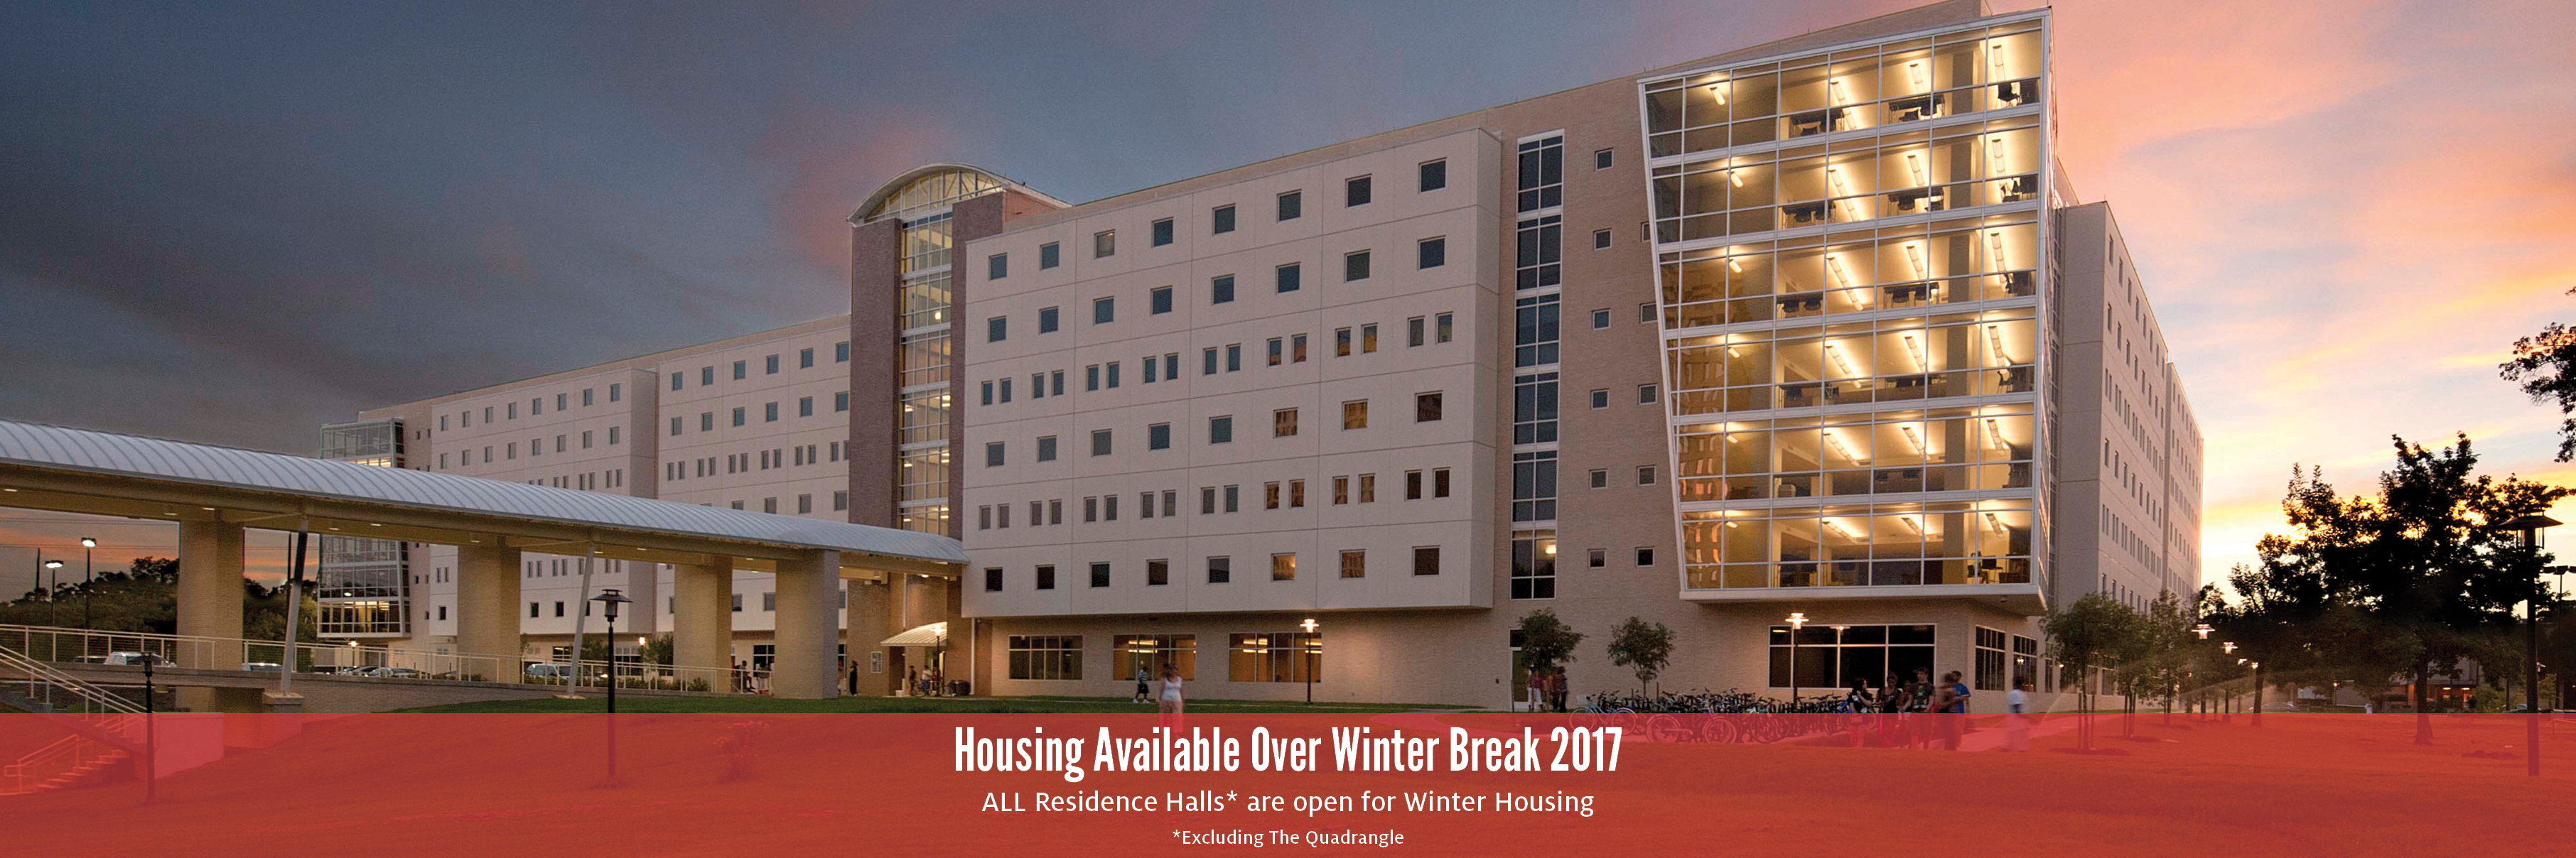 Uh Christmas Break 2020 ON CAMPUS HOUSING BEING EXPANDED TO INCLUDE THE WINTER BREAK